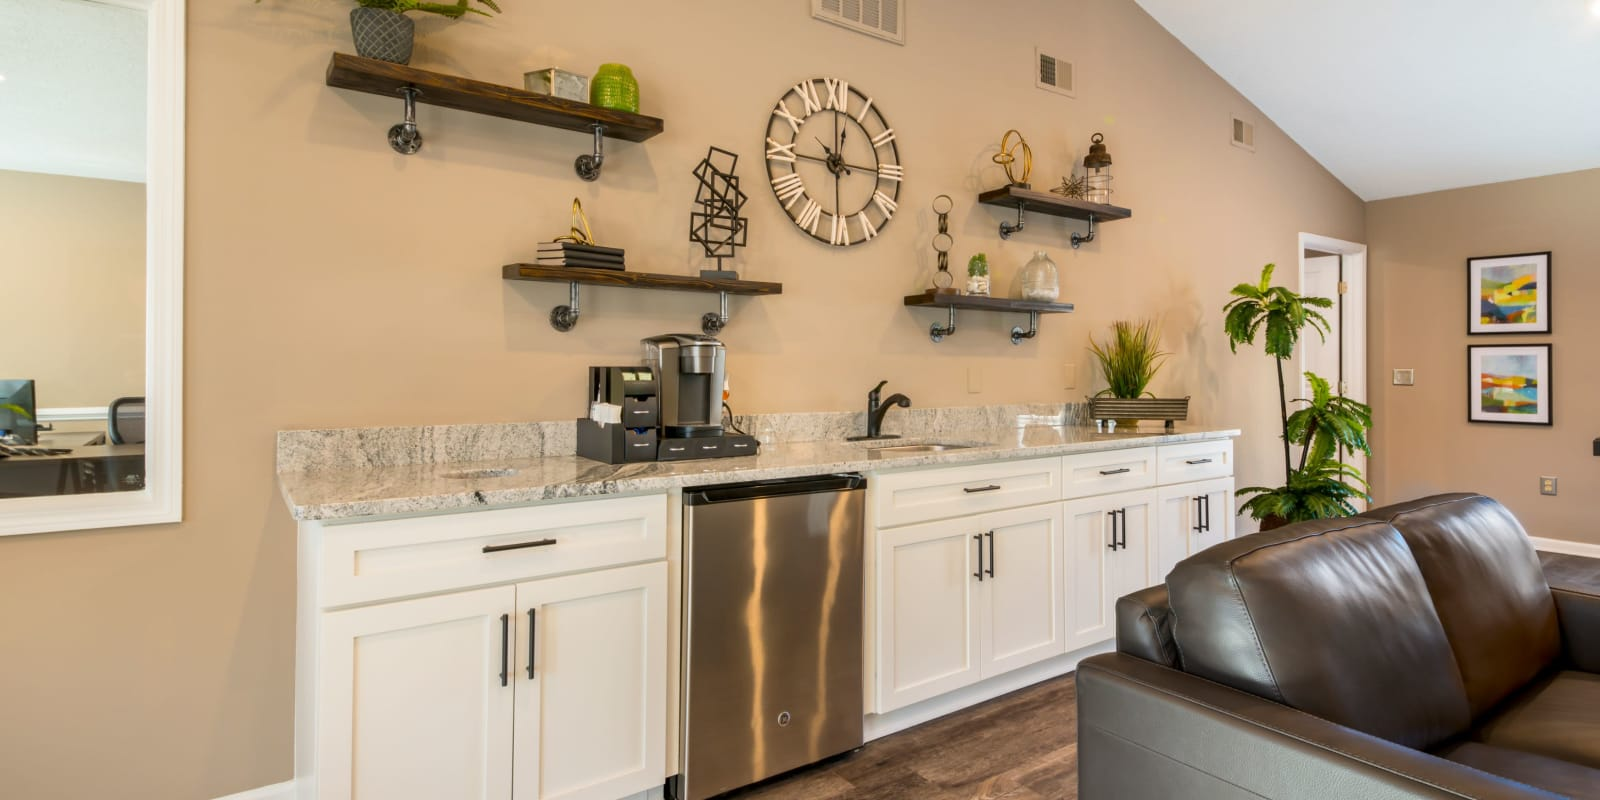 A clubhouse kitchen for resident use at Alexander Station Apartment Homes in Salisbury, North Carolina